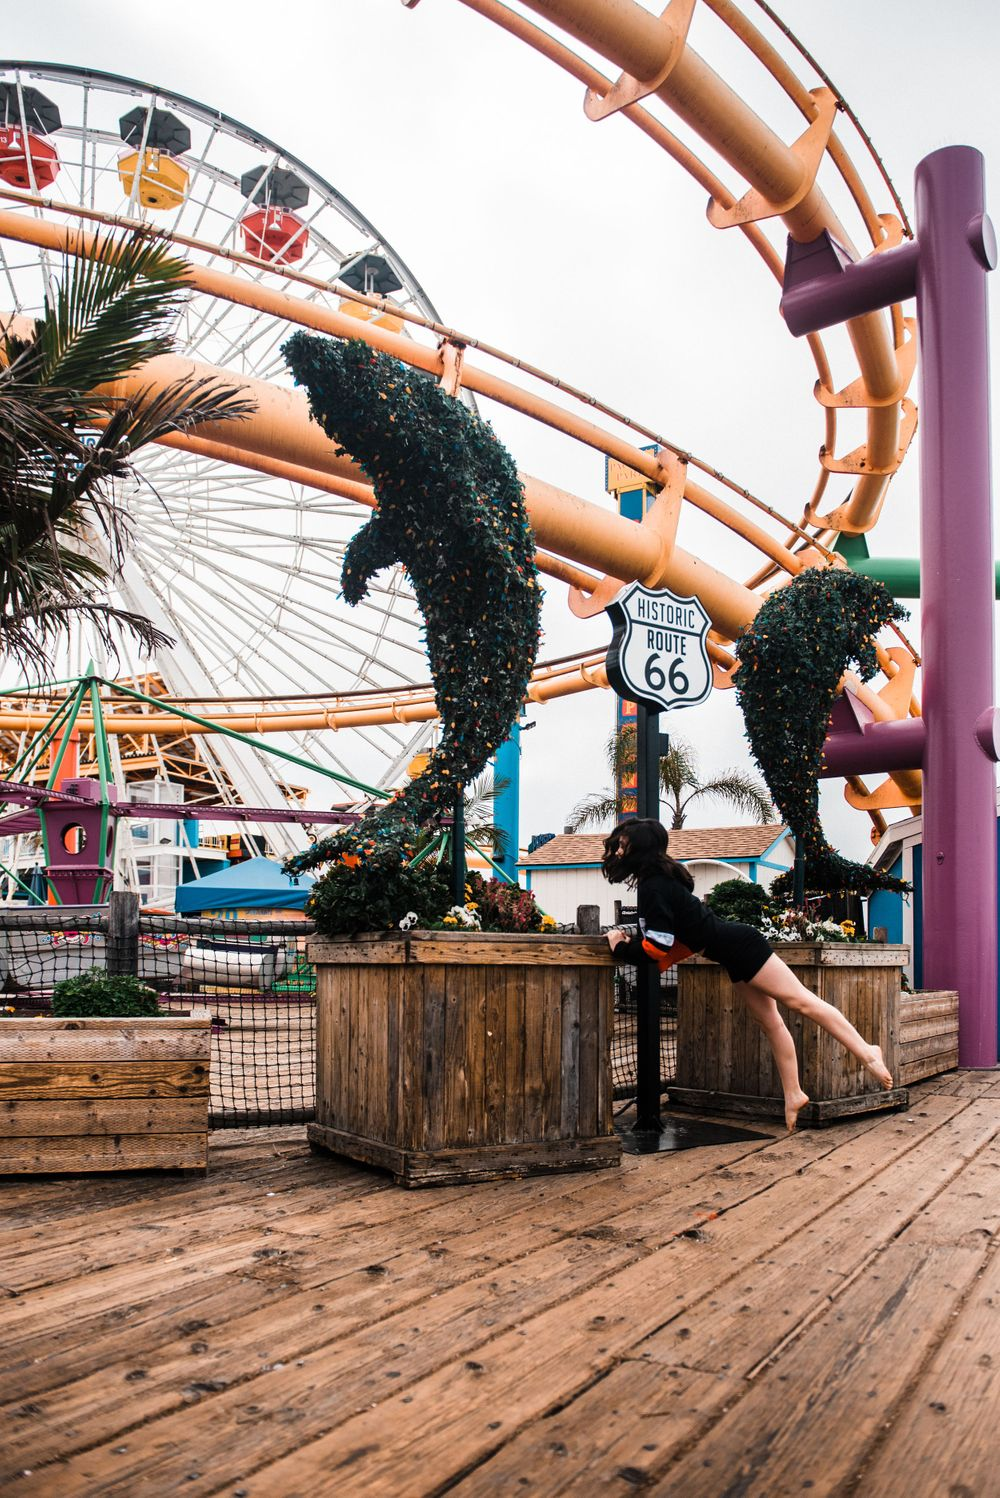 Girl dancing in front of a rollercoaster during a Santa Monica Pier photoshoot